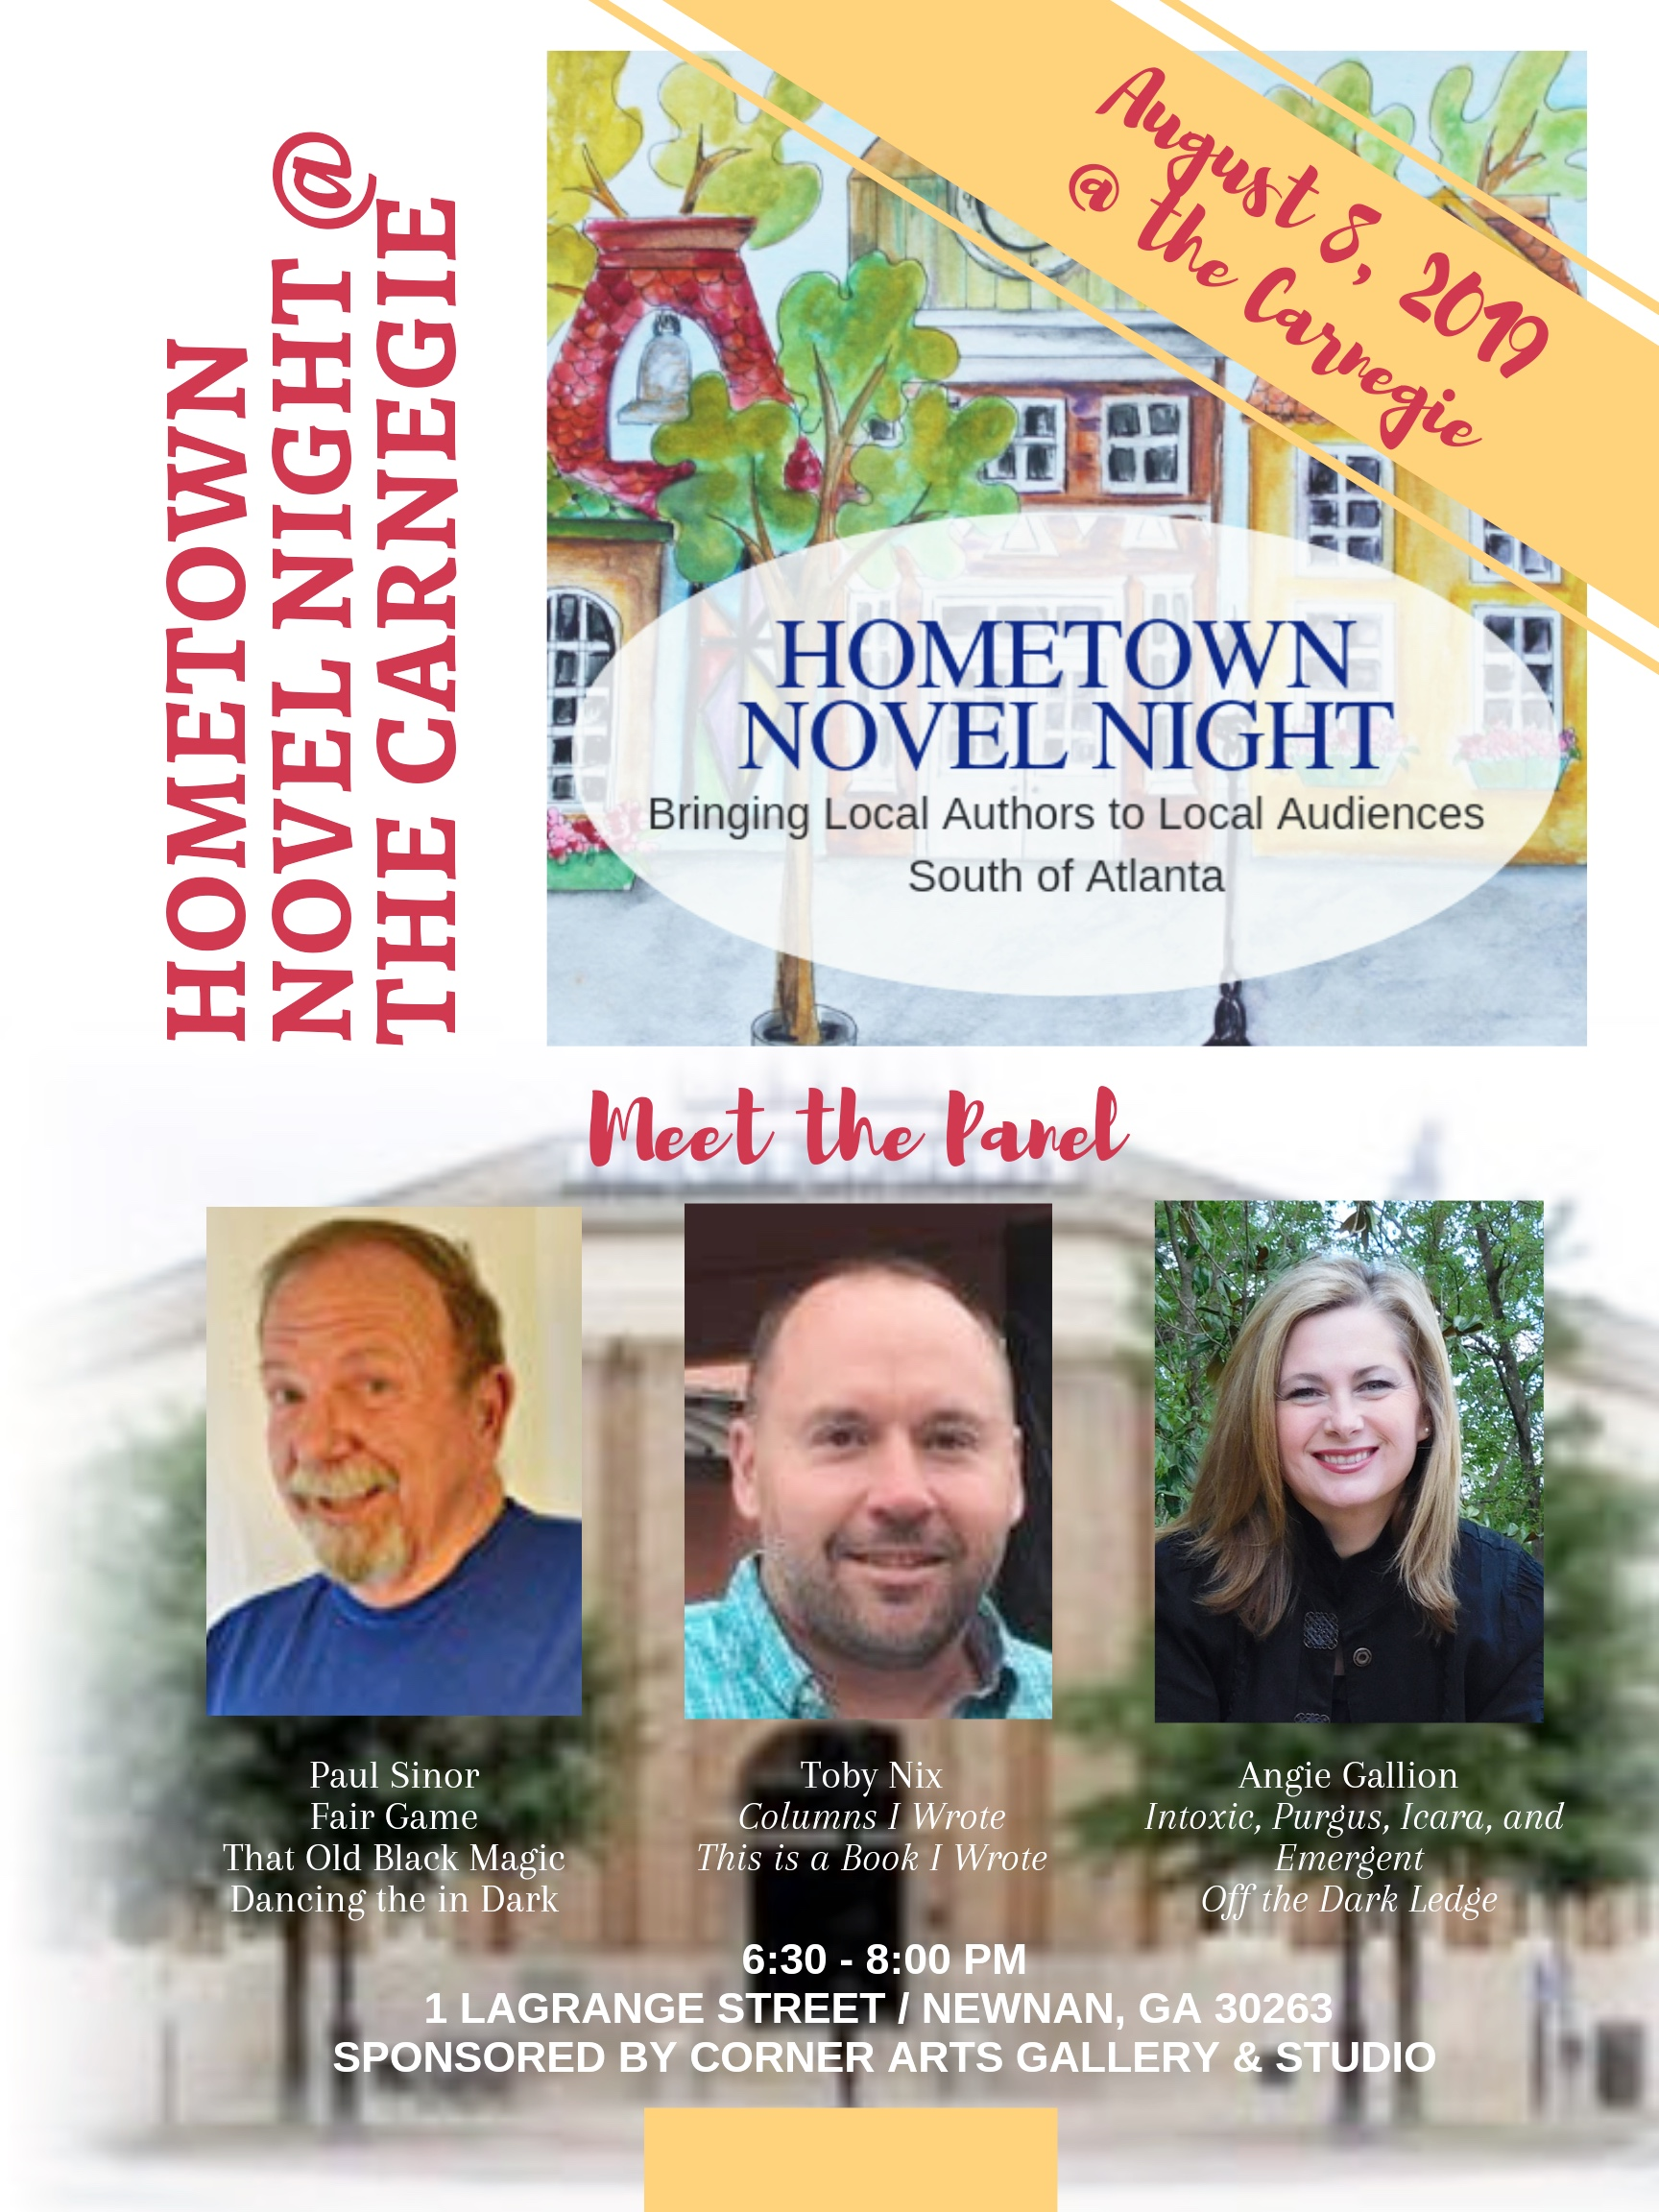 The Hometown Novel Night. - Paul Sinor will be one of the many talented authors presenting at The Hometown Novel Night. That Old Black Magic will be available for purchase.